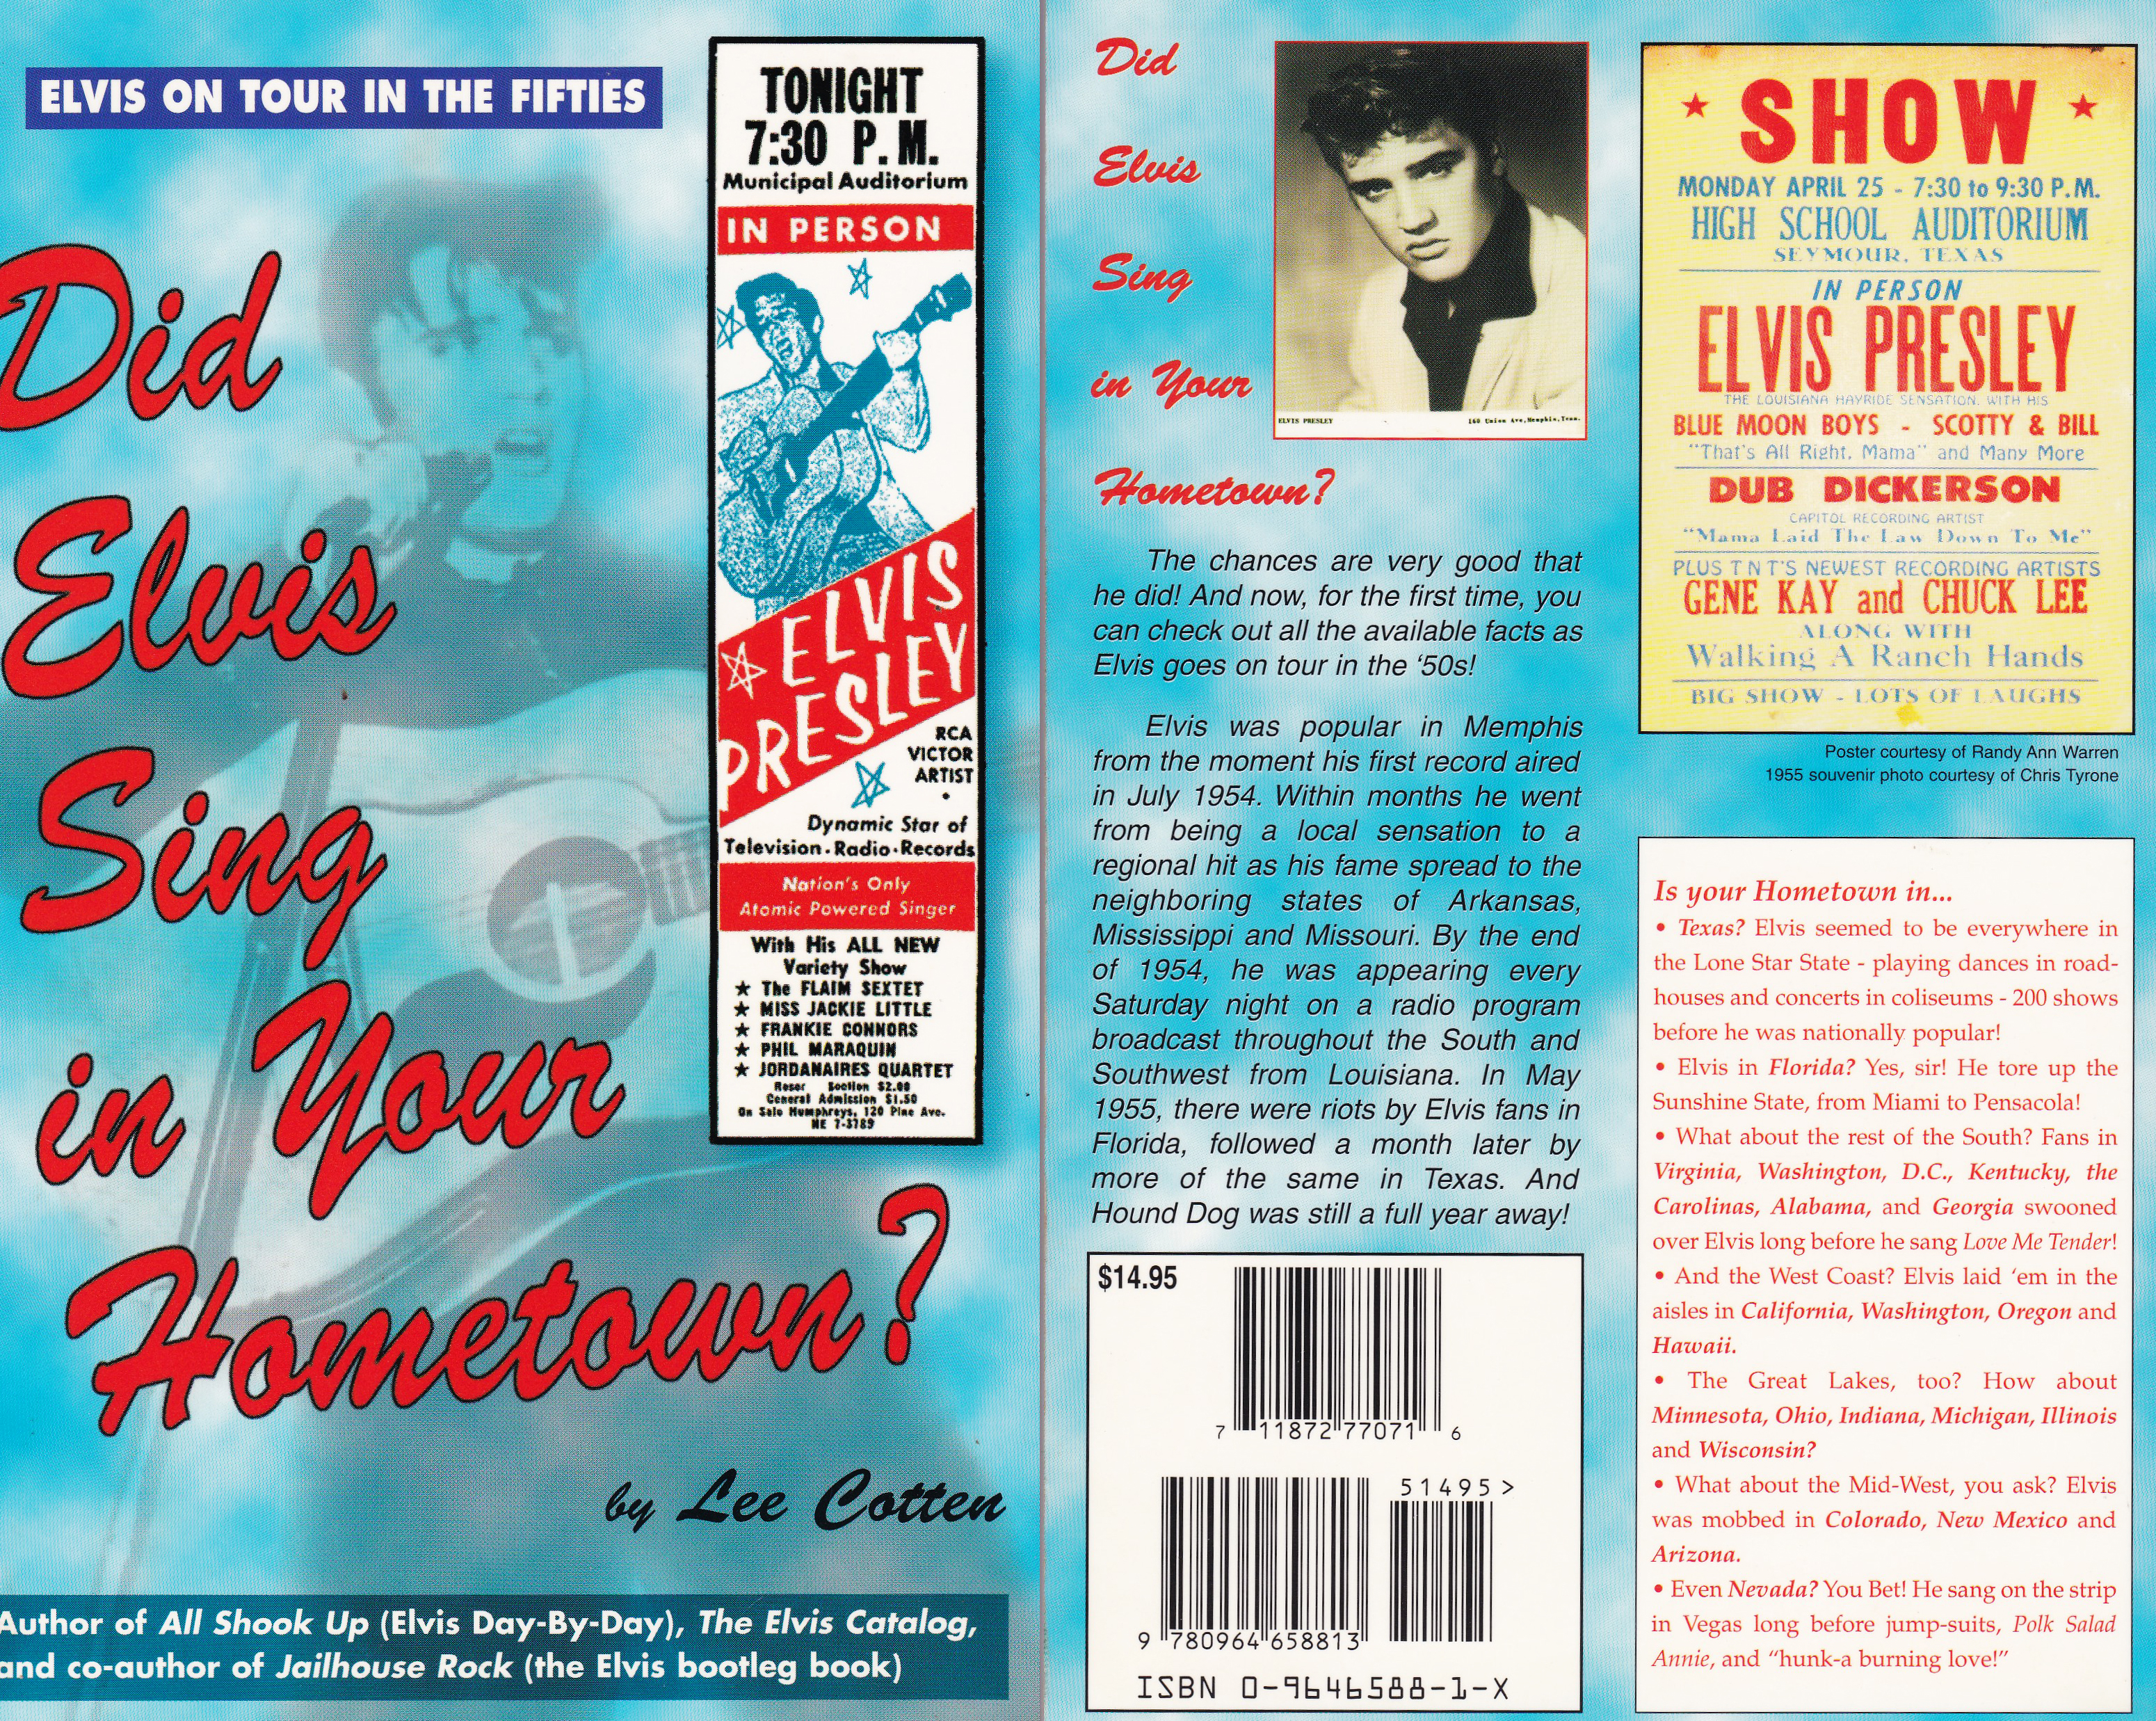 SEPTEMBER 17, 2017 HI ELVIS COLLECTORS, HURRICANE I just